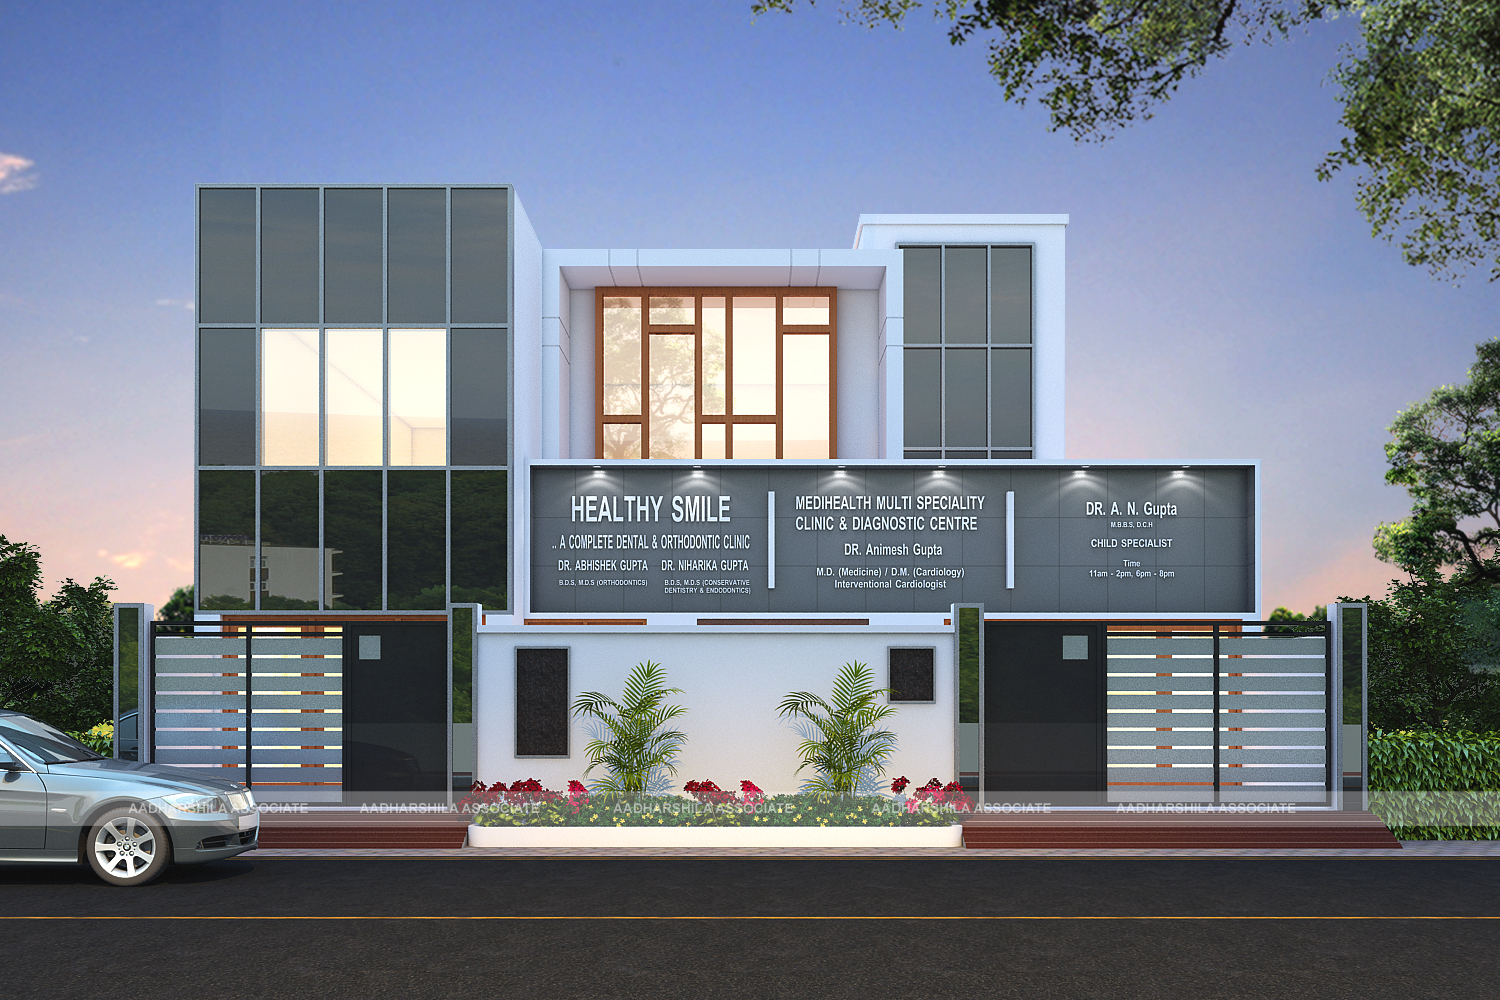 Architects, Interior Design,Jabalpur, Bhopal, Indore, architect, interior designers in India,best,efficient designers